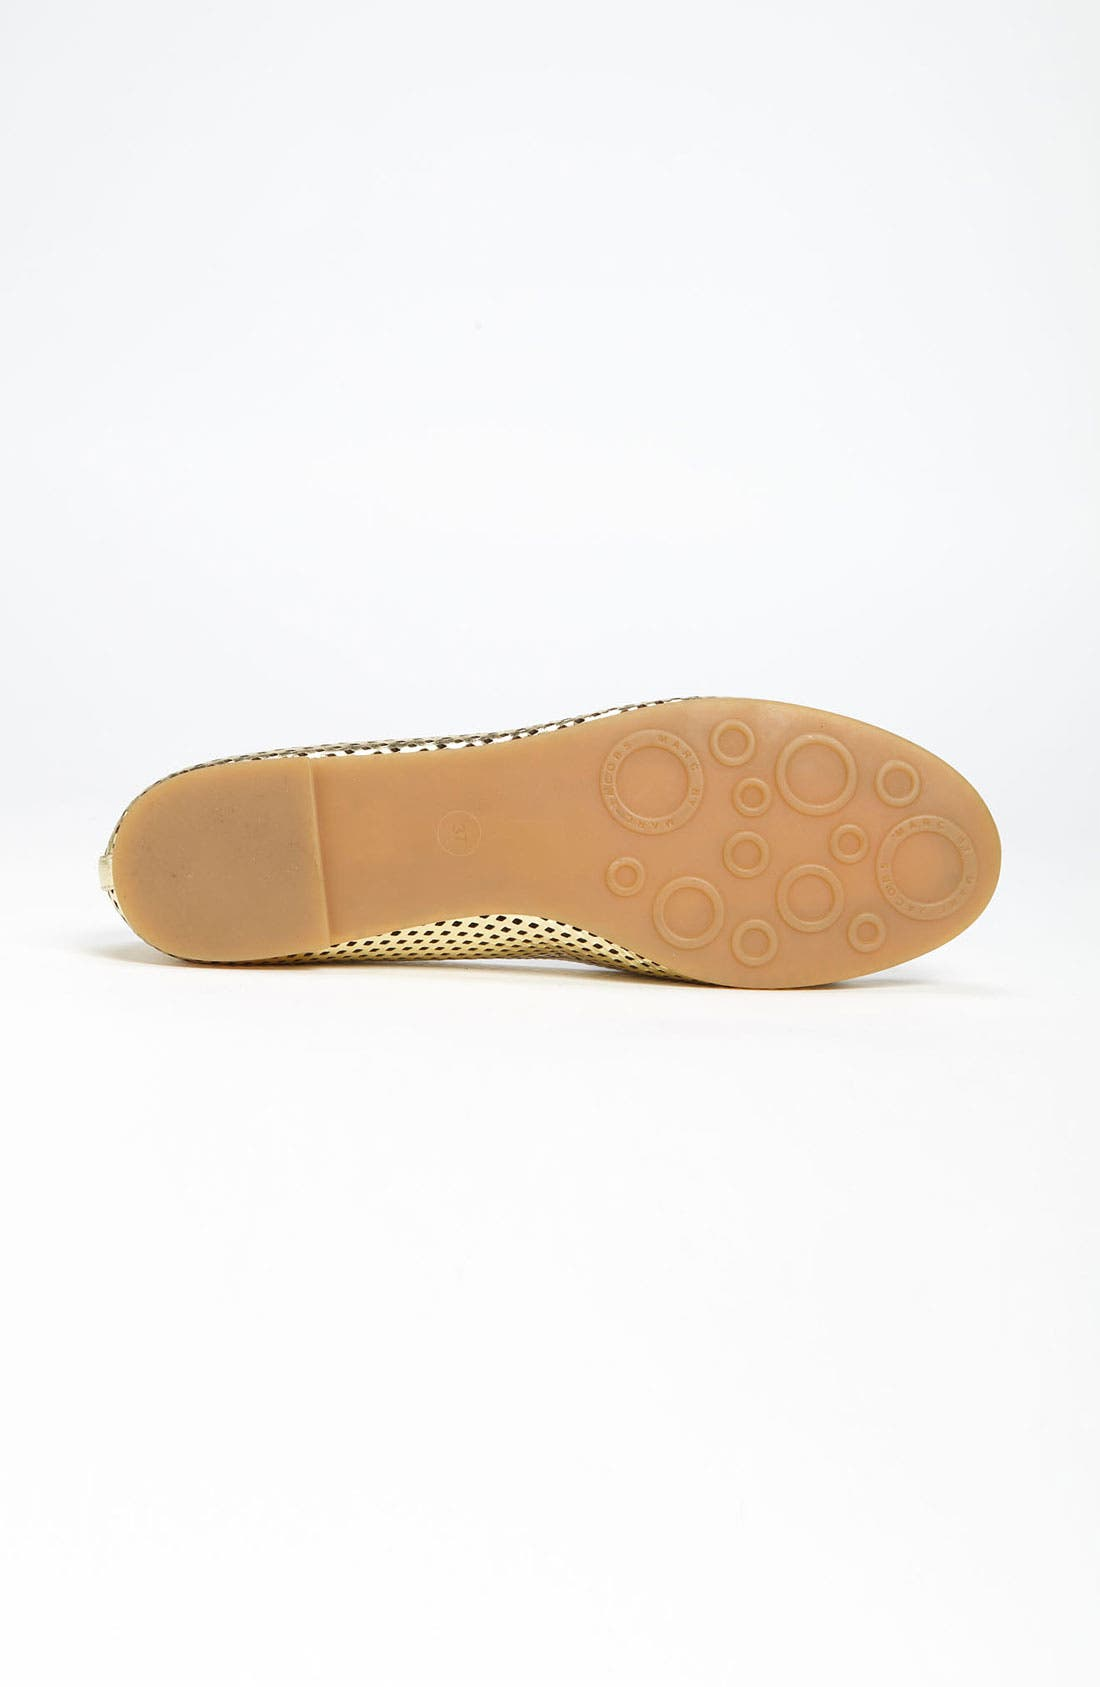 MARC BY MARC JACOBS 'Mouse' Ballet Flat,                             Alternate thumbnail 4, color,                             711